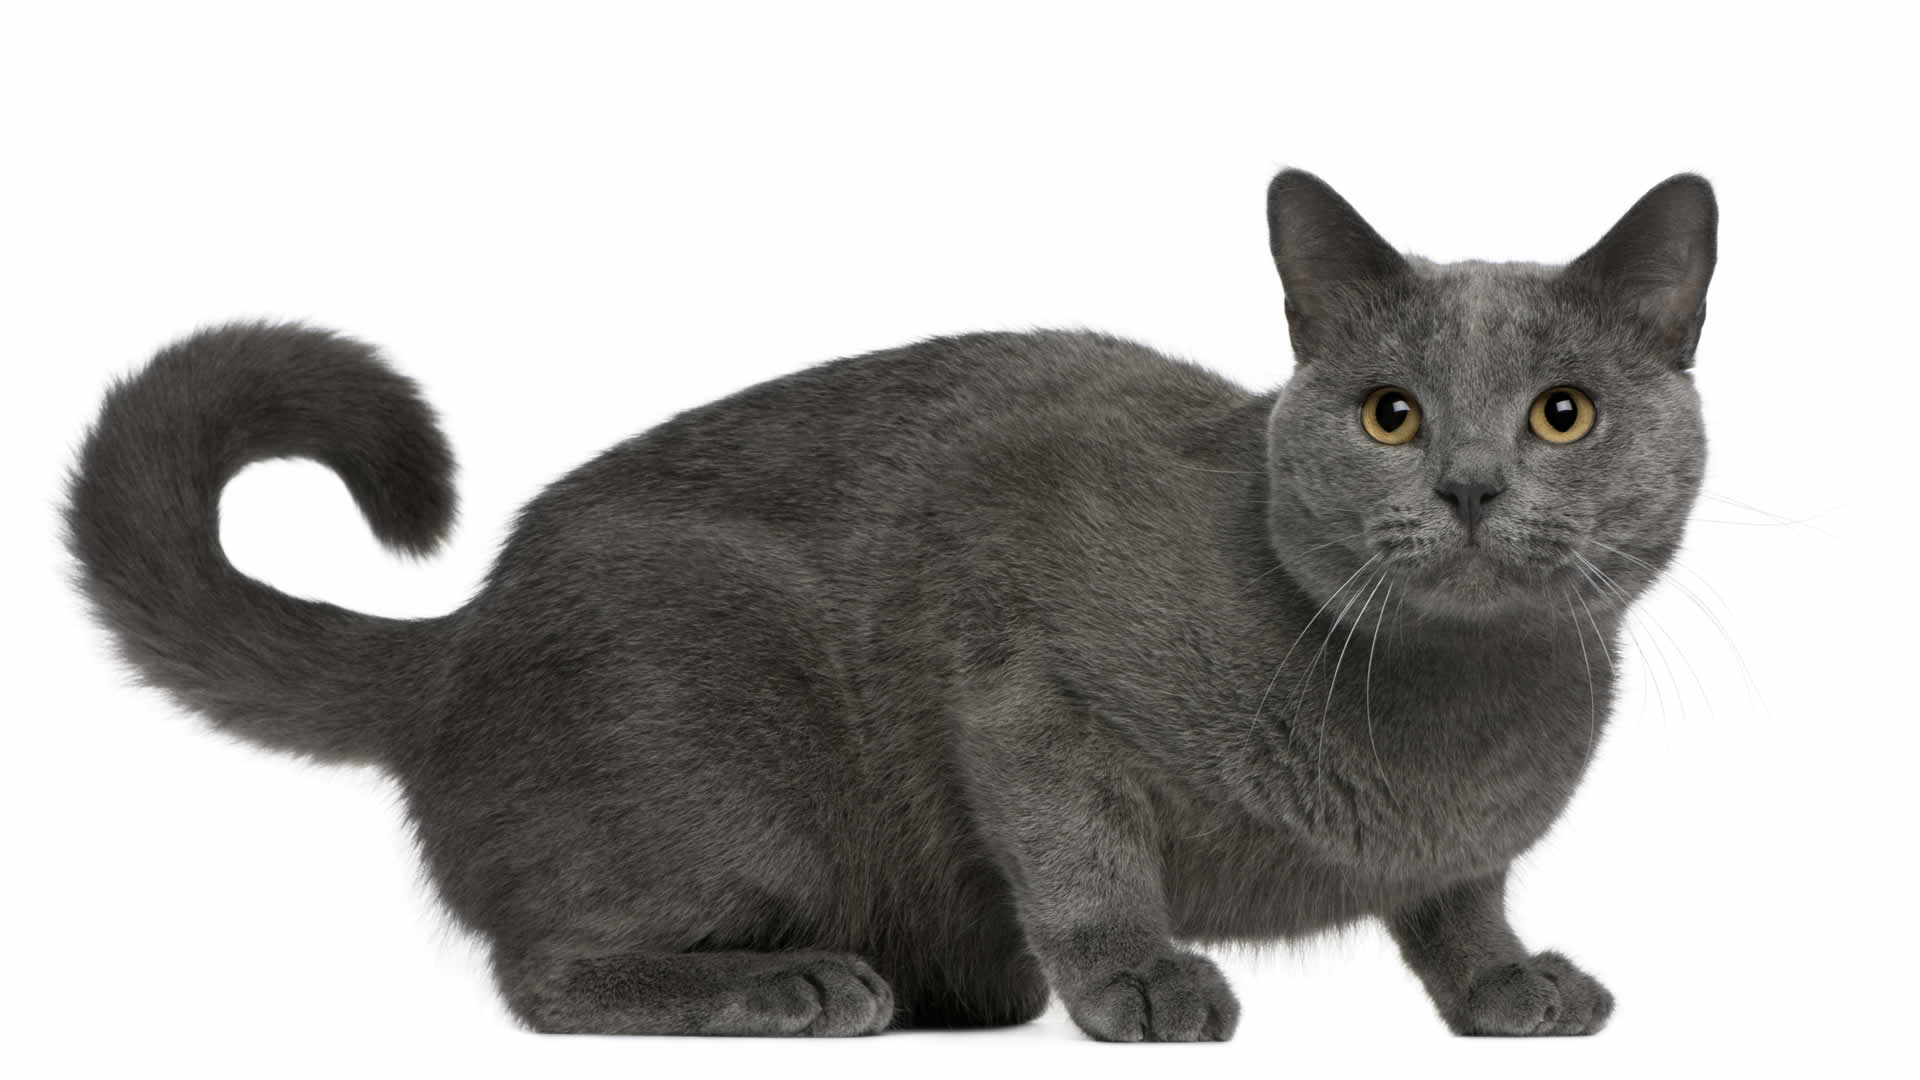 Long tailed cat breed Chartreux